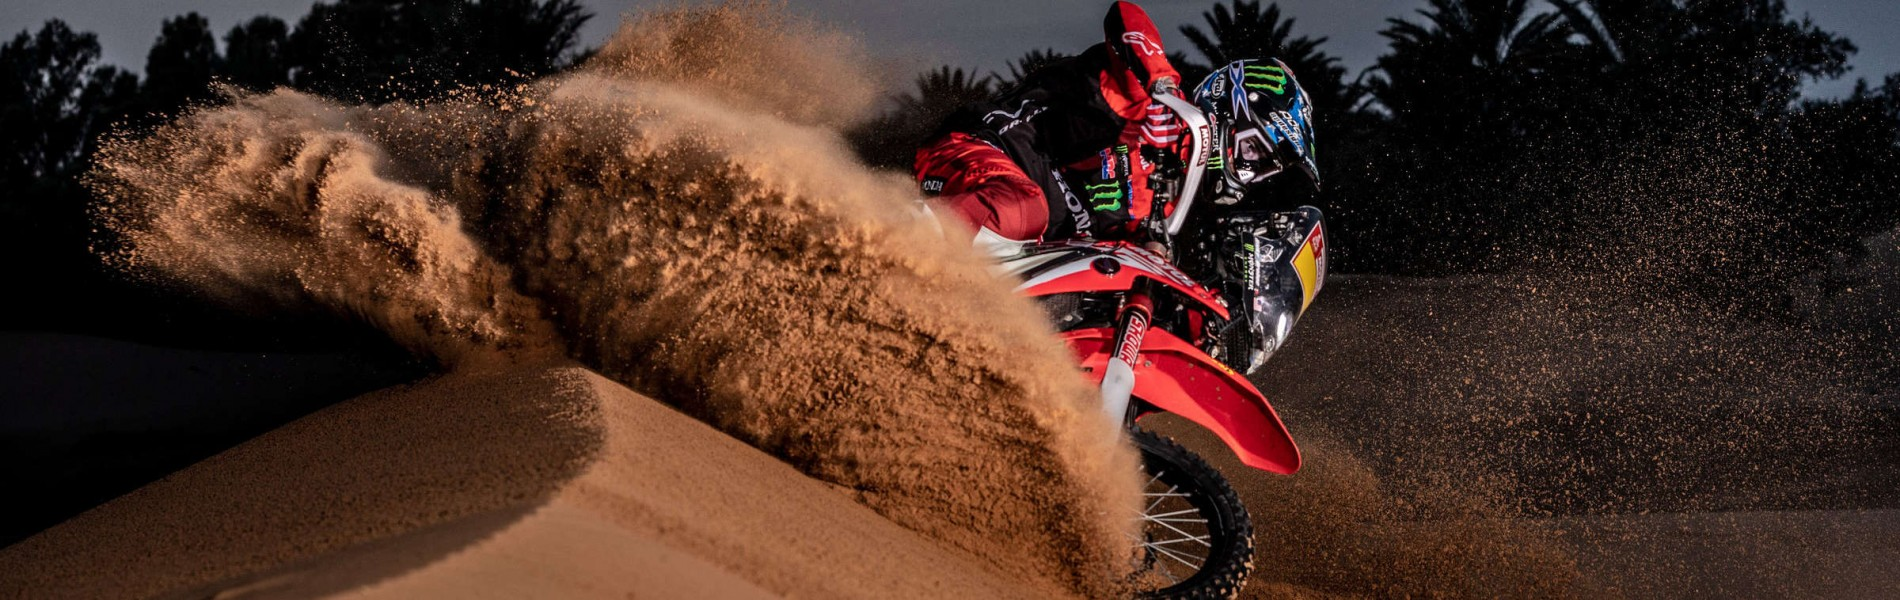 Ricky Brabec at the 2019 Dakar HRC Shoot